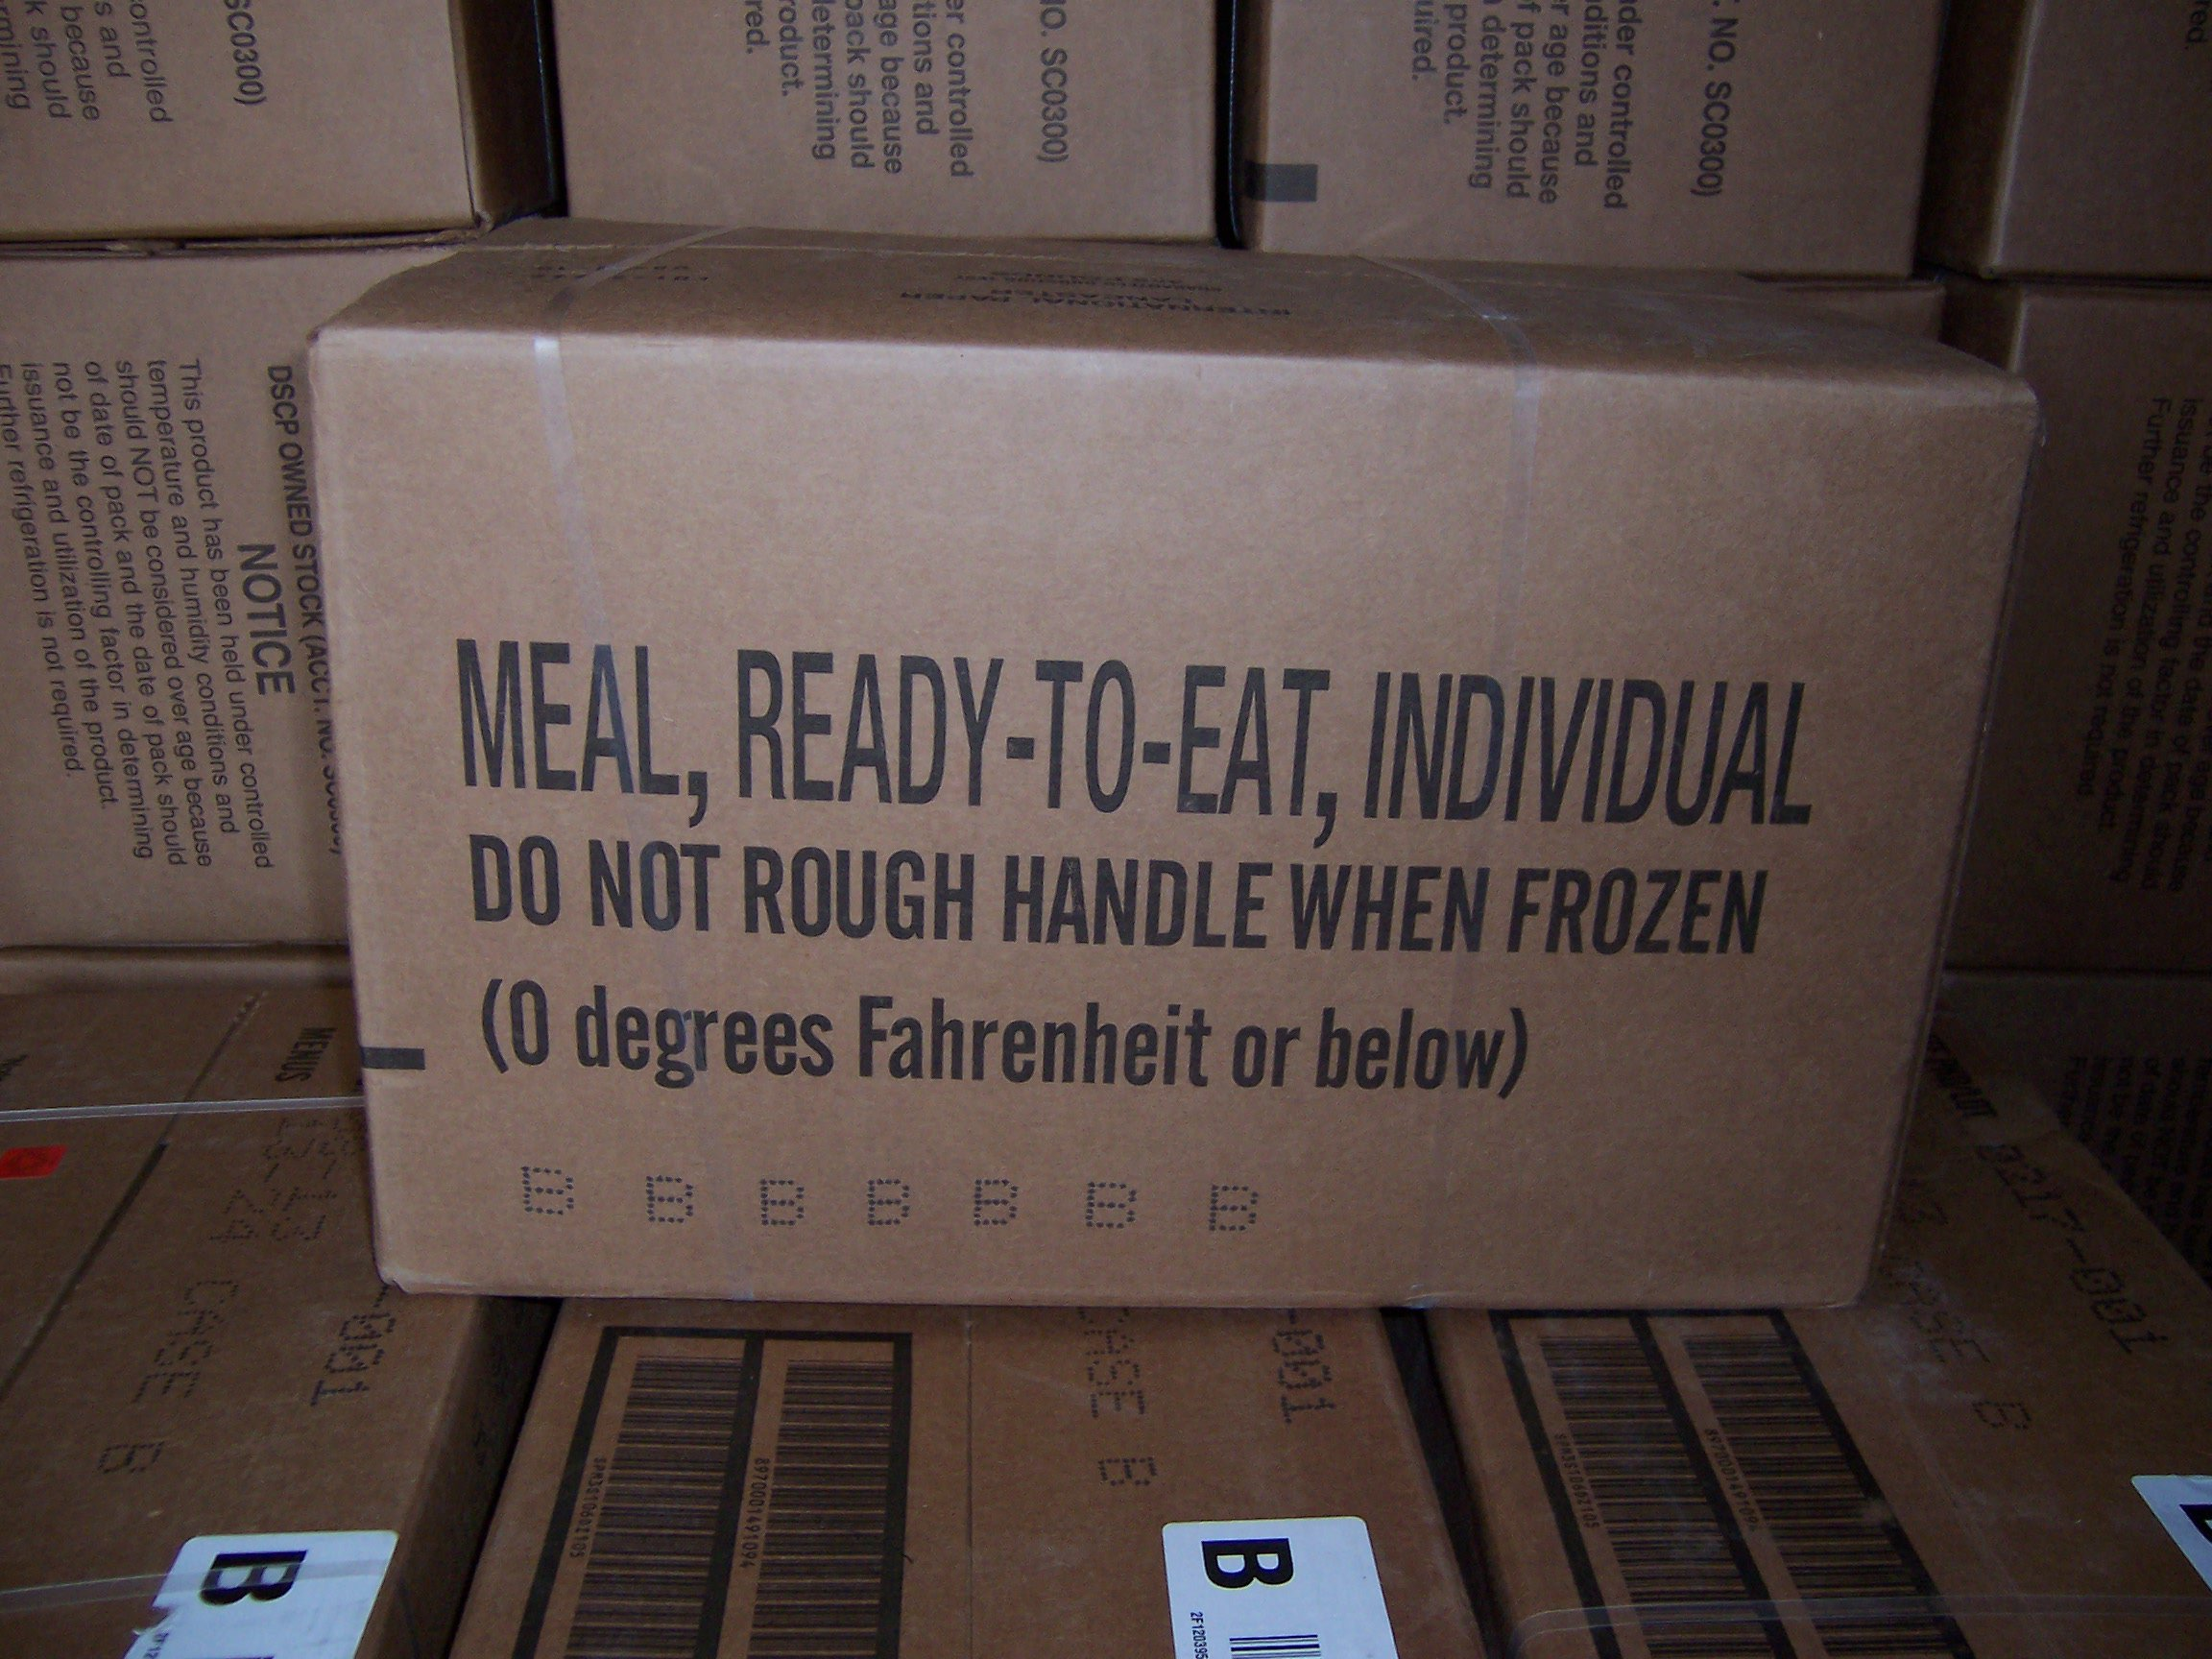 MRE MEALS MILITARY Case B READY TO EAT INSP 4/2016 Fresh! Meals 13-24 FACTORY SEALED by MRE